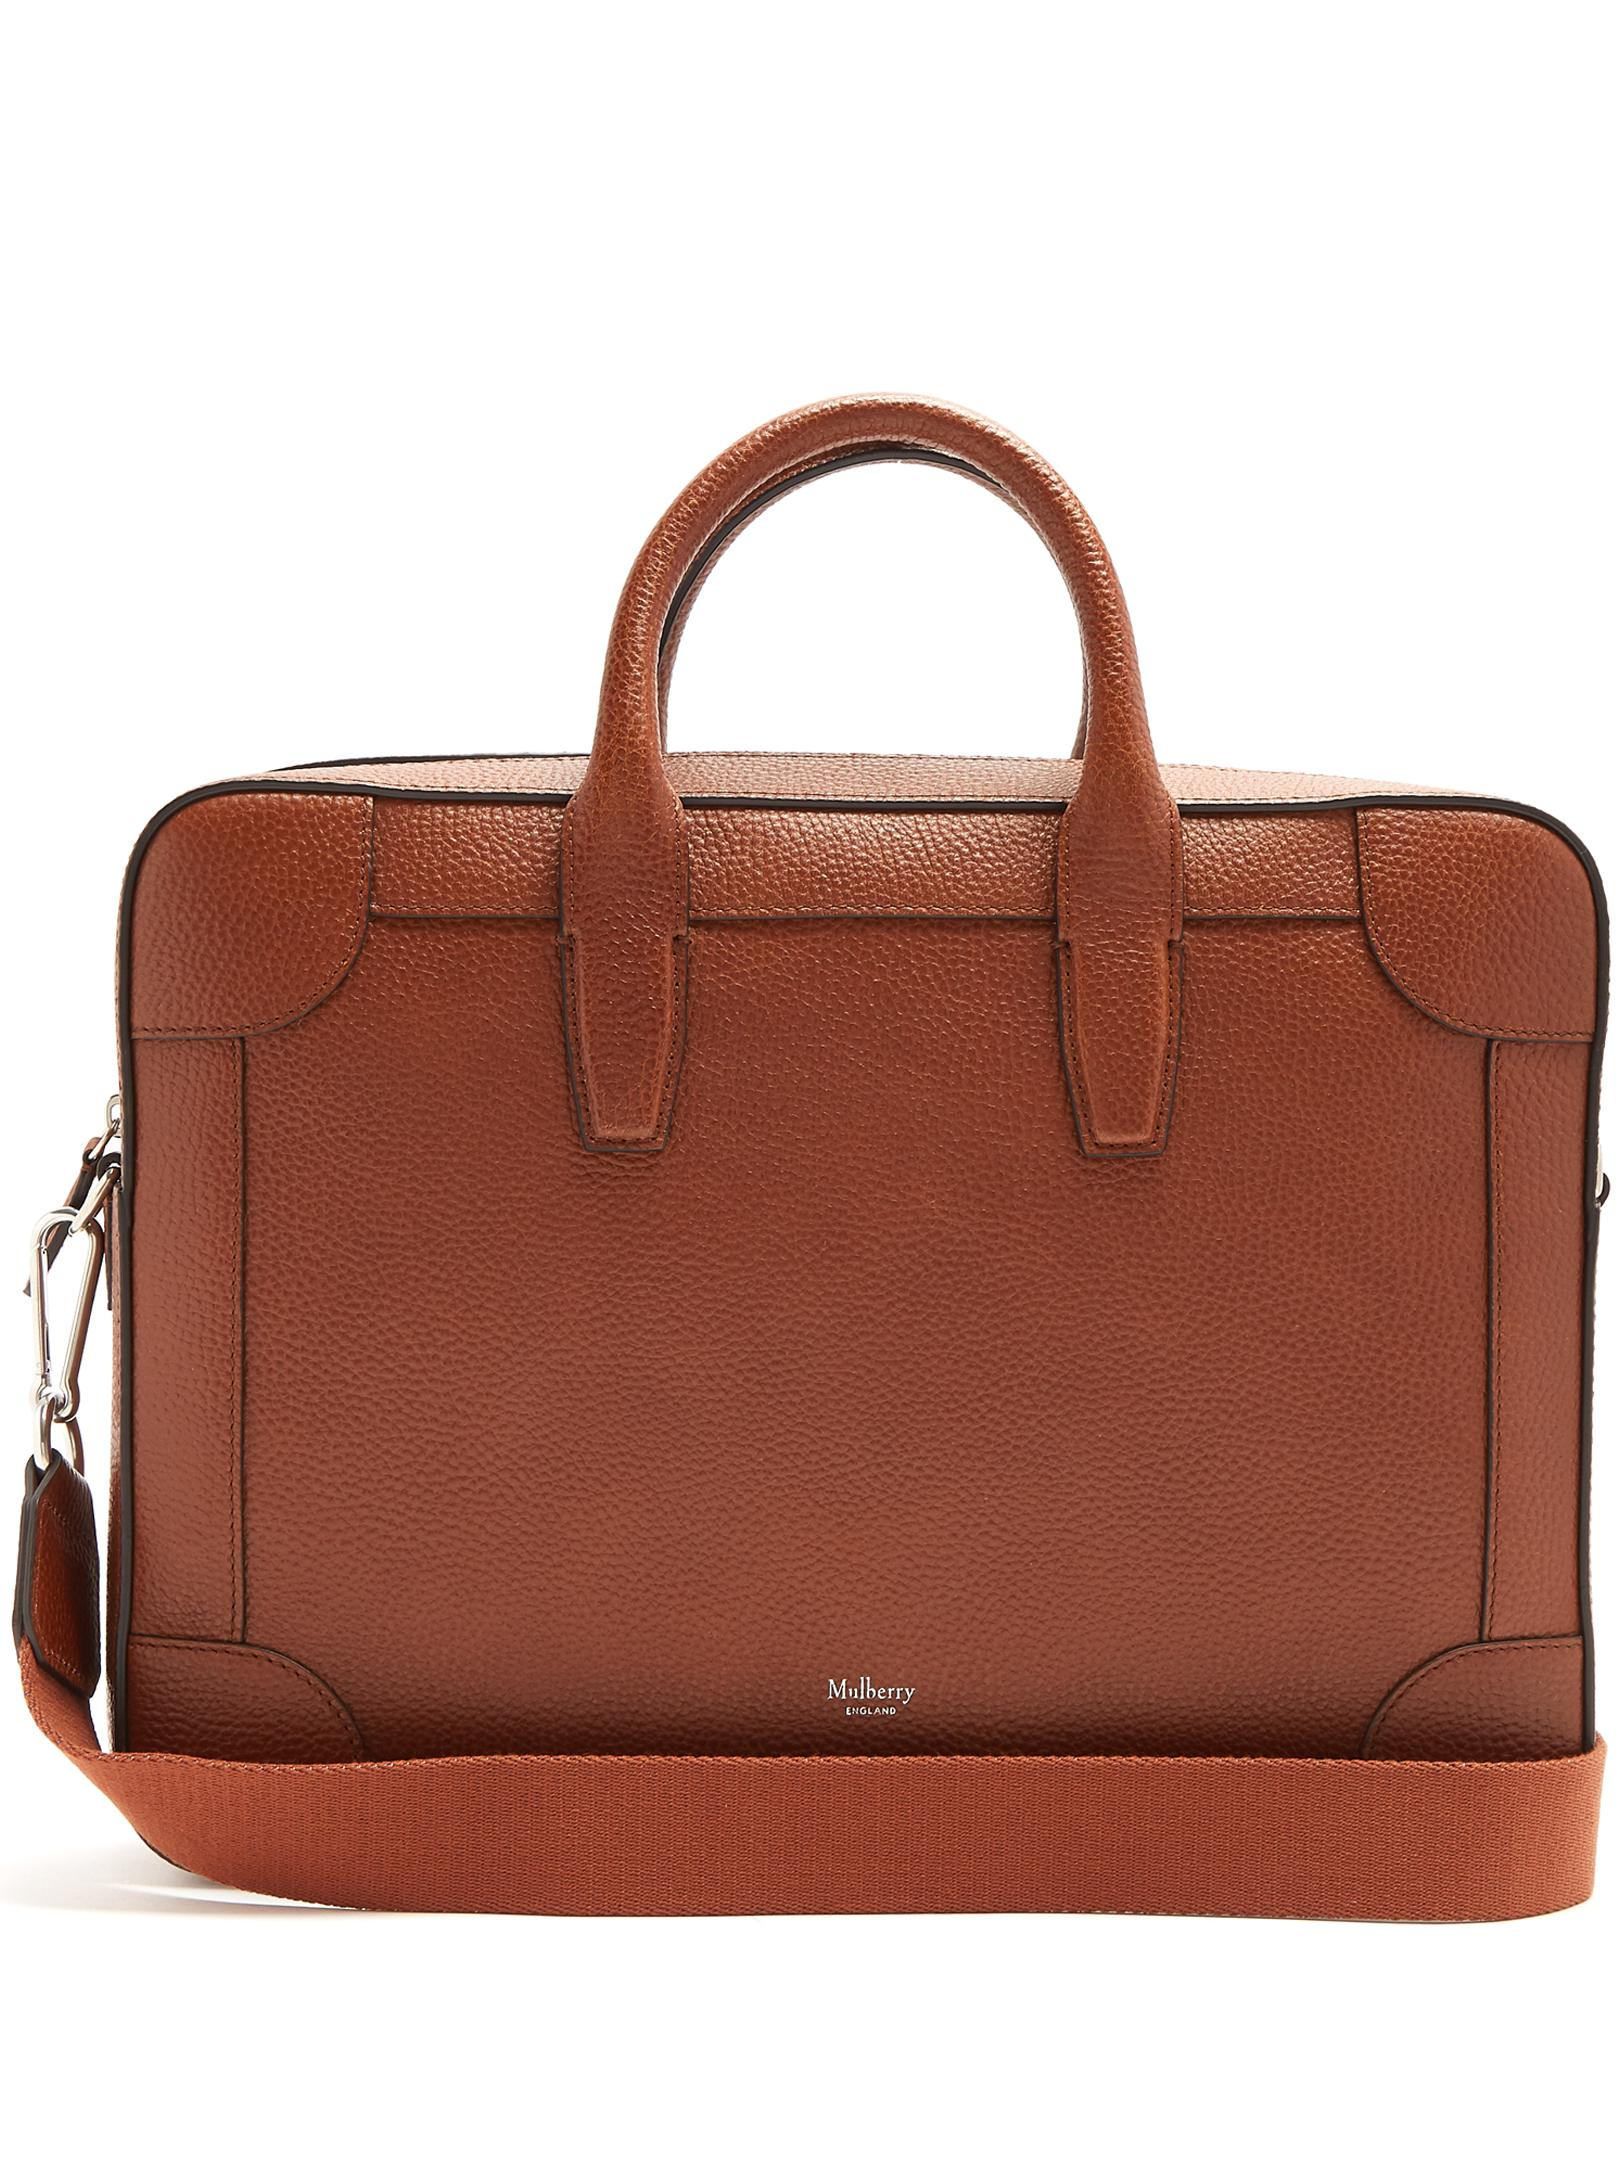 02f99388b0 Mulberry Belgrave Grained-leather Briefcase in Brown for Men - Lyst